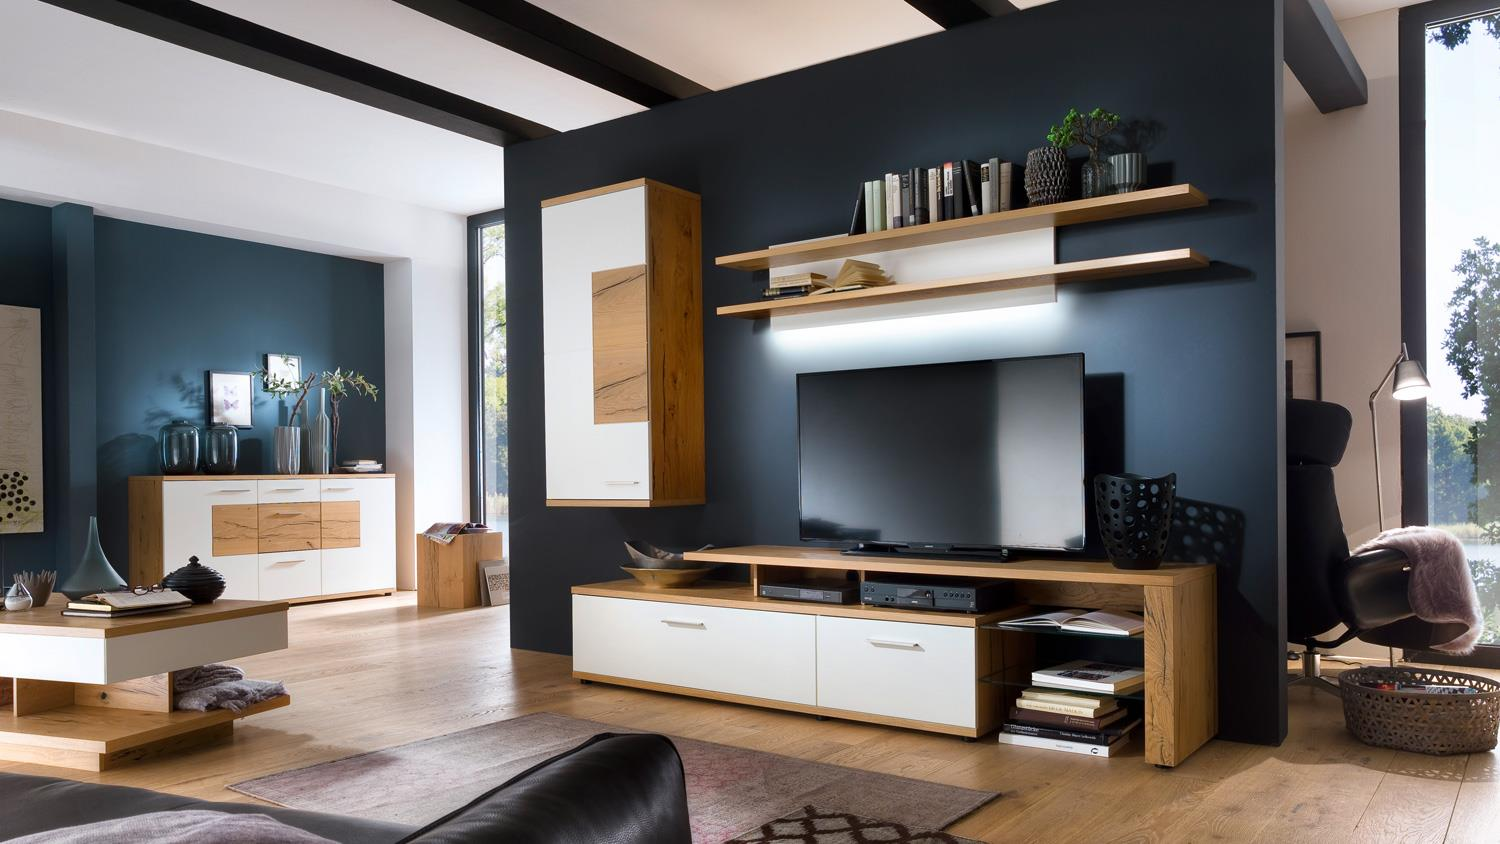 h ngeschrank nizza schrank wei matt lack crackeiche furniert. Black Bedroom Furniture Sets. Home Design Ideas